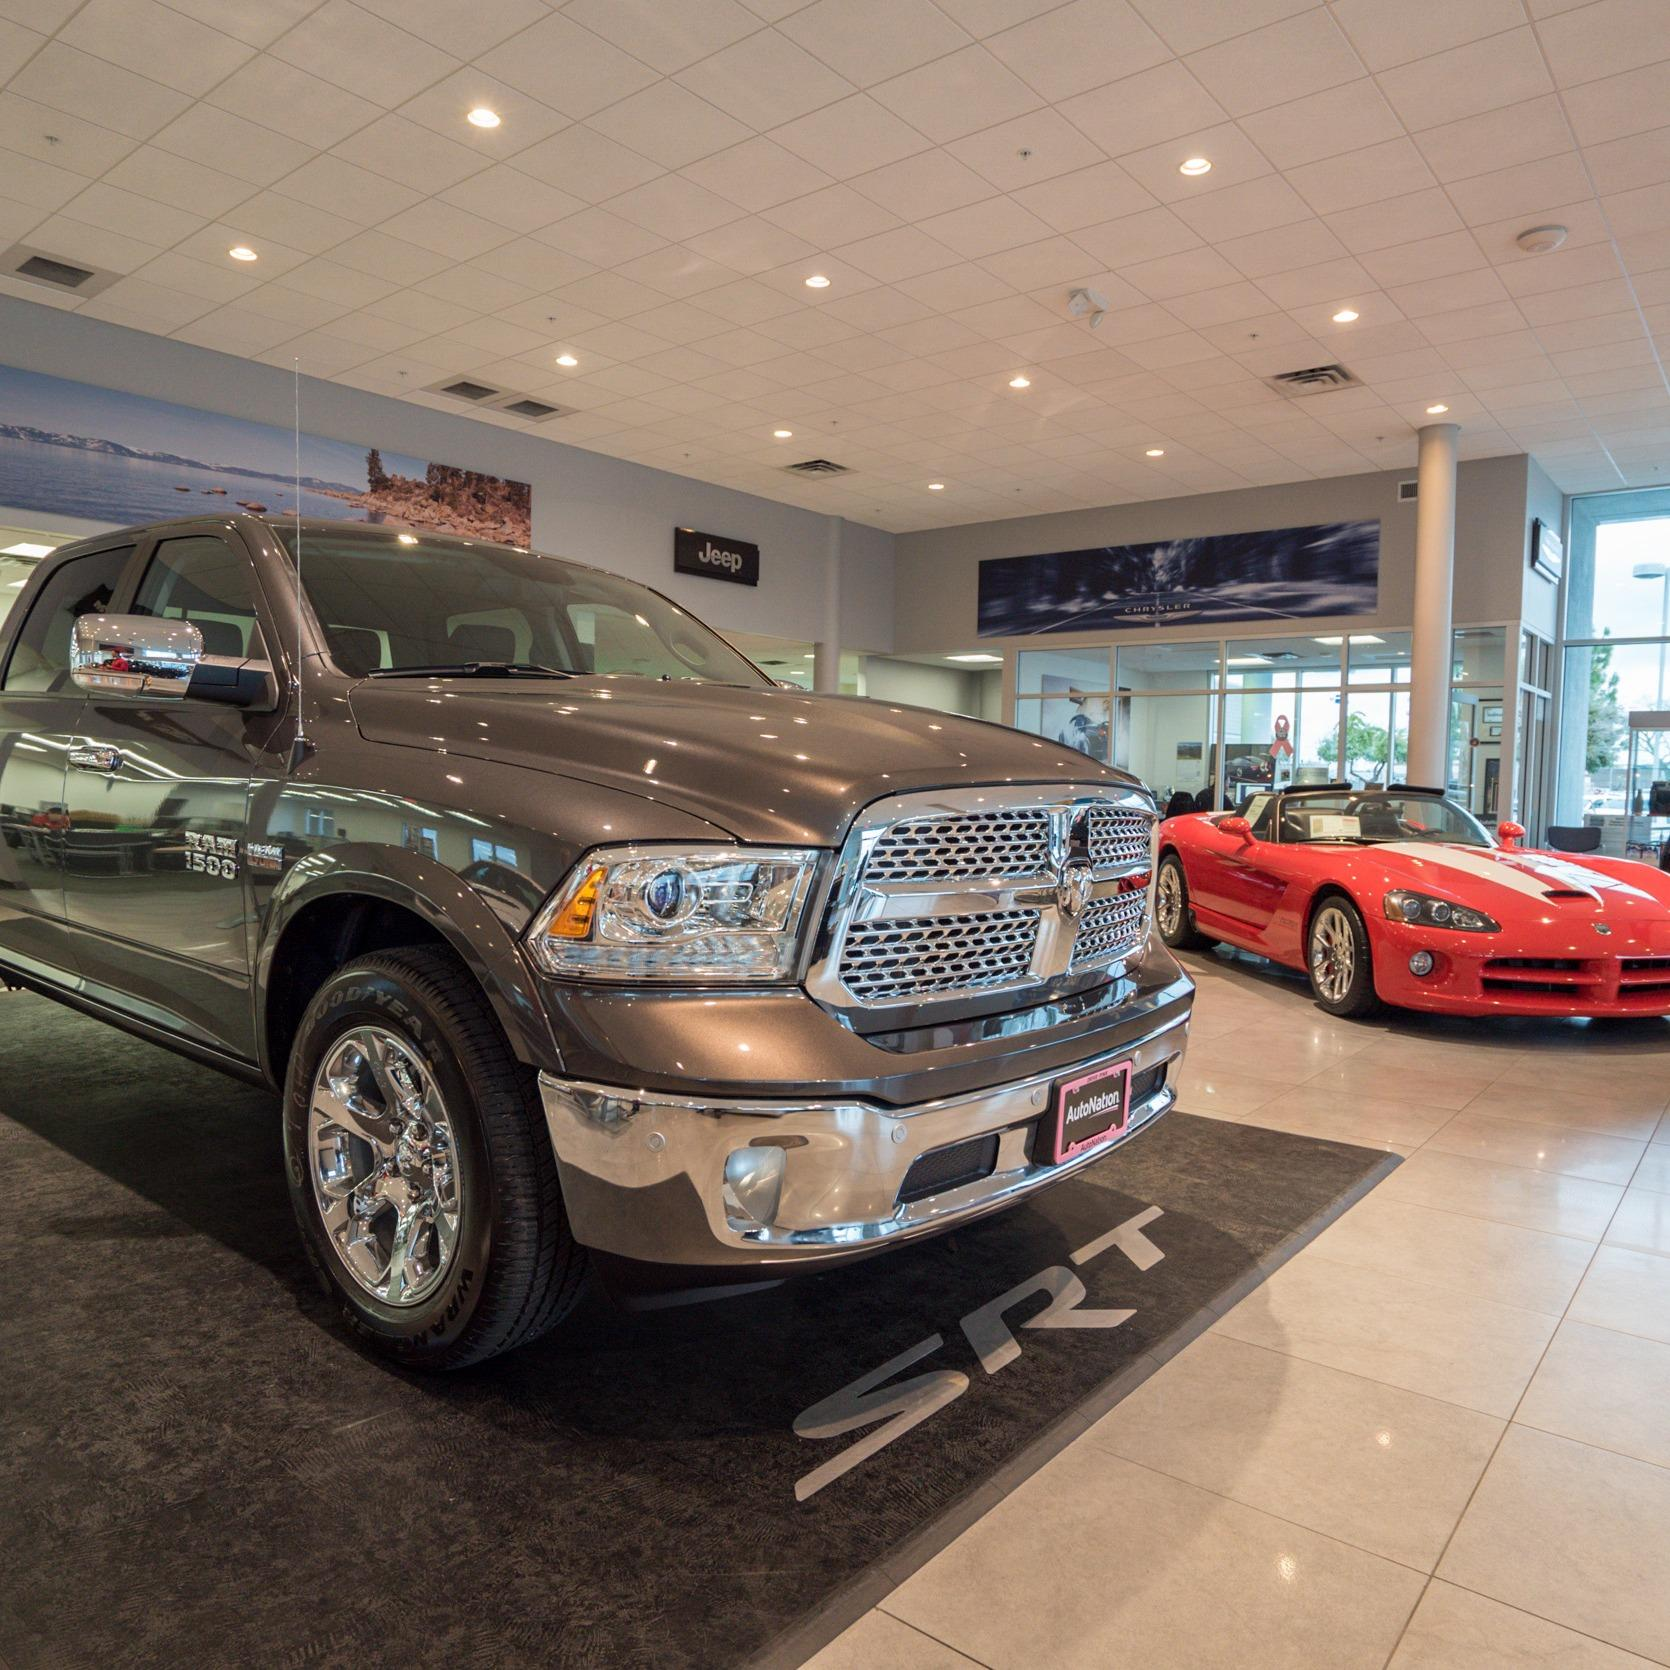 AutoNation Chrysler Dodge Jeep RAM Roseville 200 Automall Drive